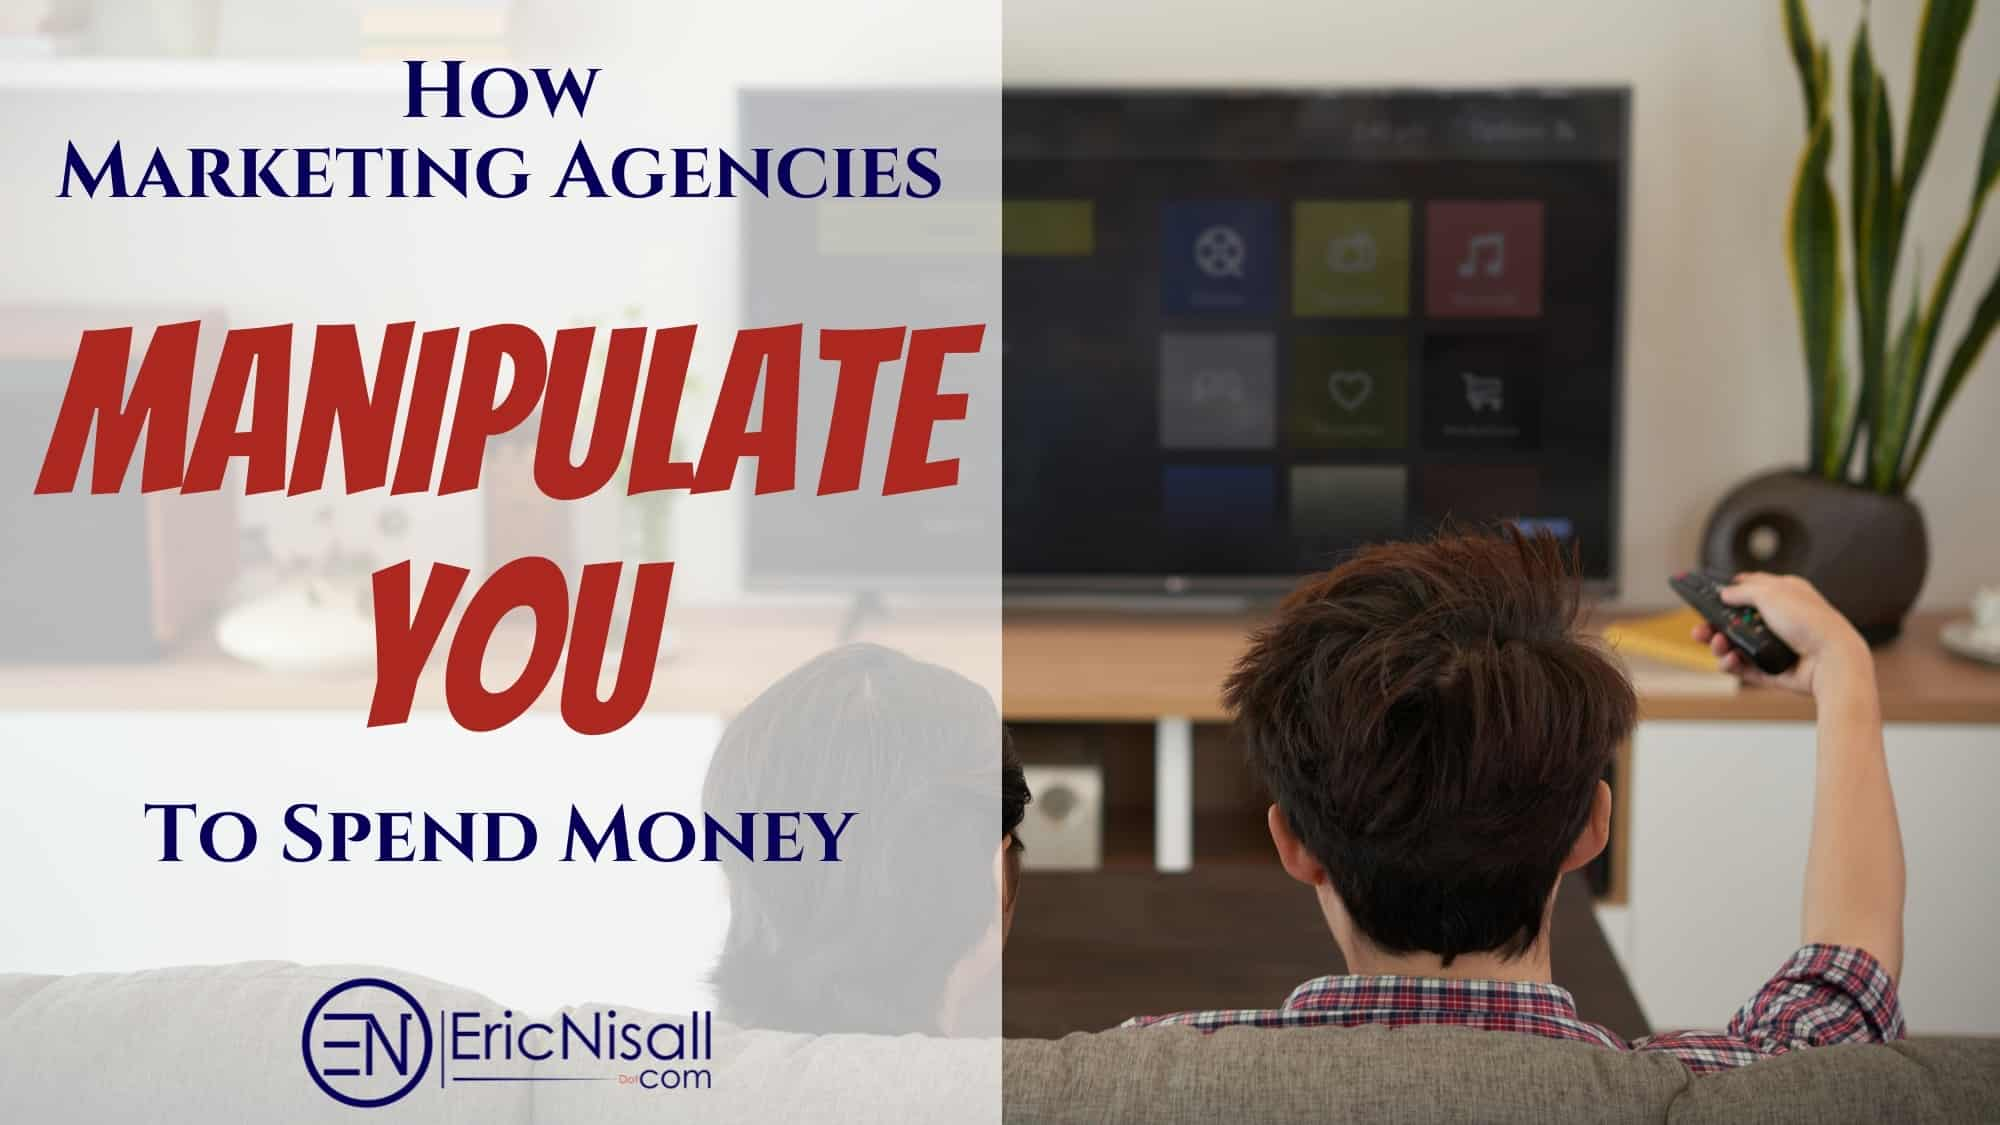 Couple on brown cloth couch skipping over ads by marketing agencies smart flat screen tv